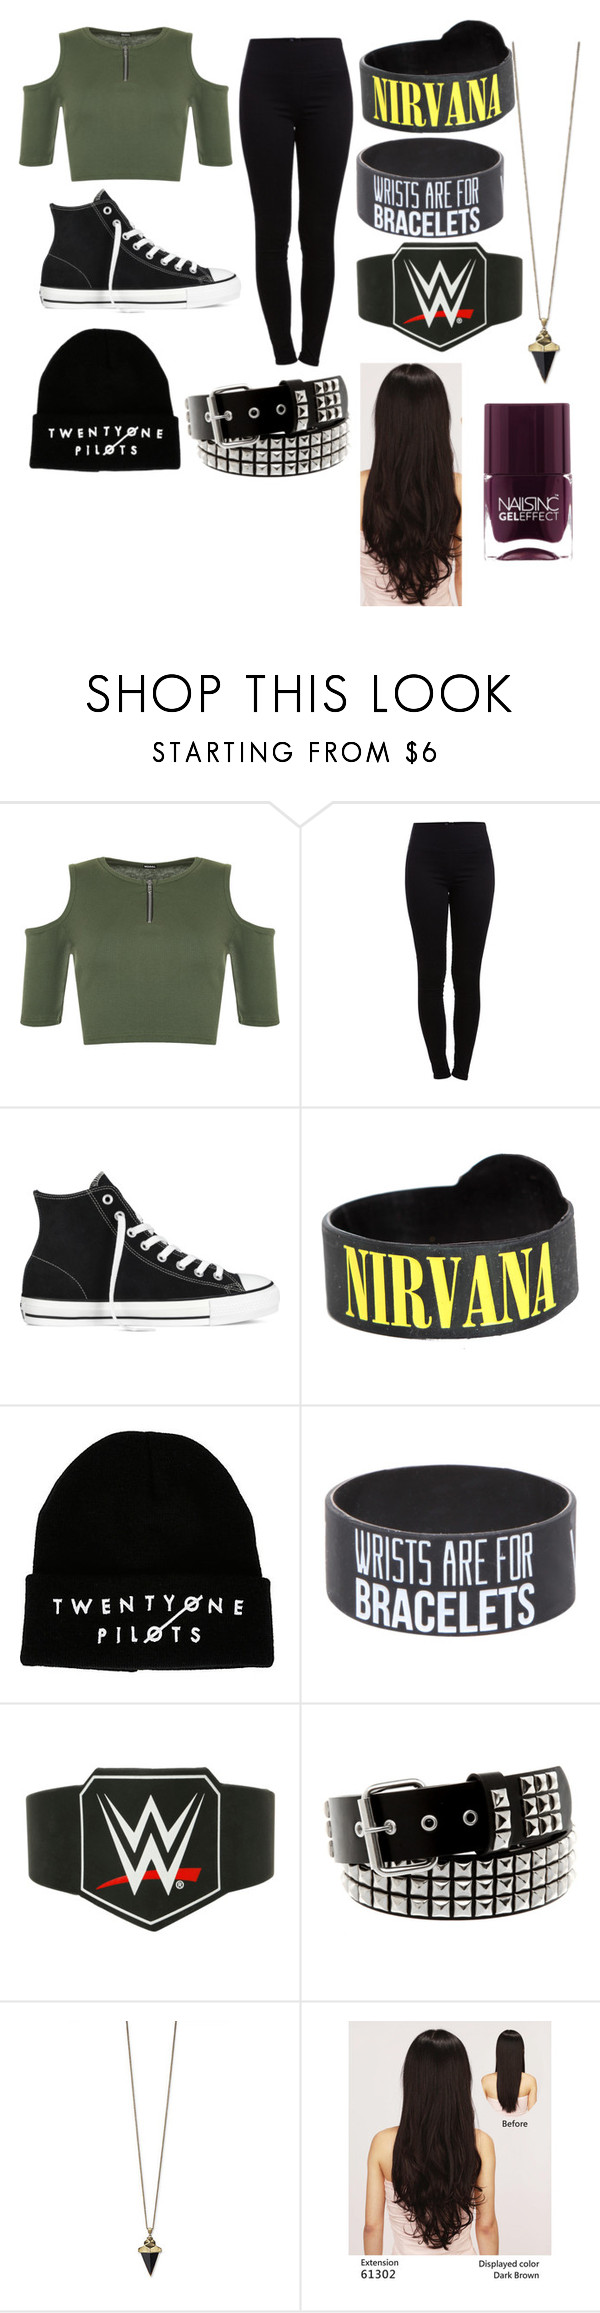 """Untitled #25"" by antidivajade ❤ liked on Polyvore featuring WearAll, Pieces, Converse, LeSalon and Nails Inc."